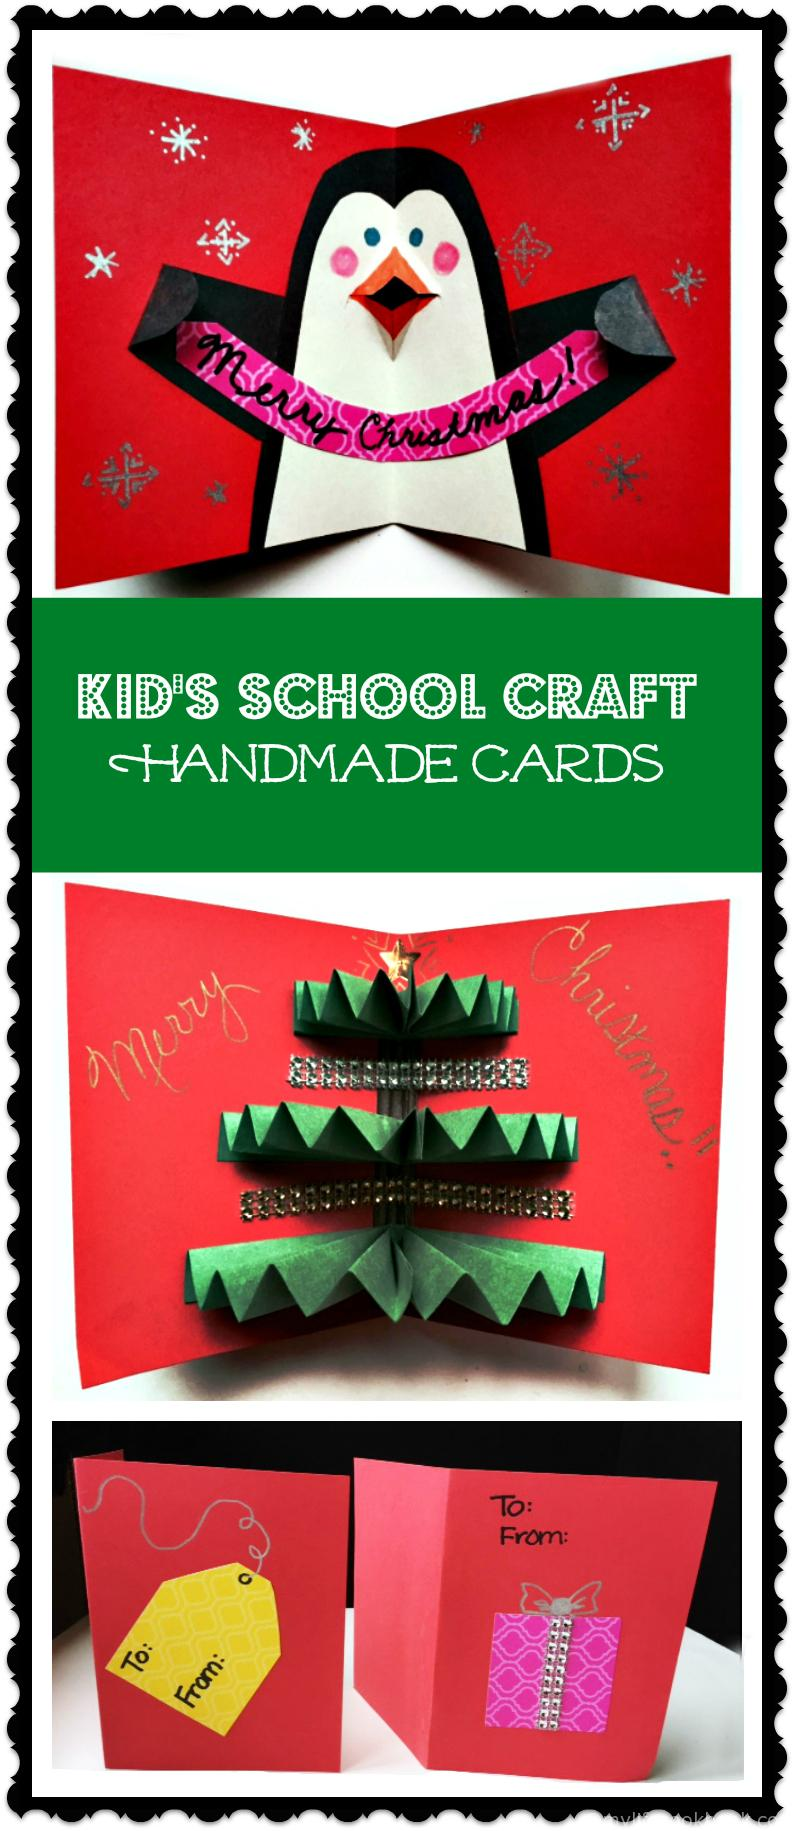 A fun Christmas craft for kids to make at school, handmade cards.